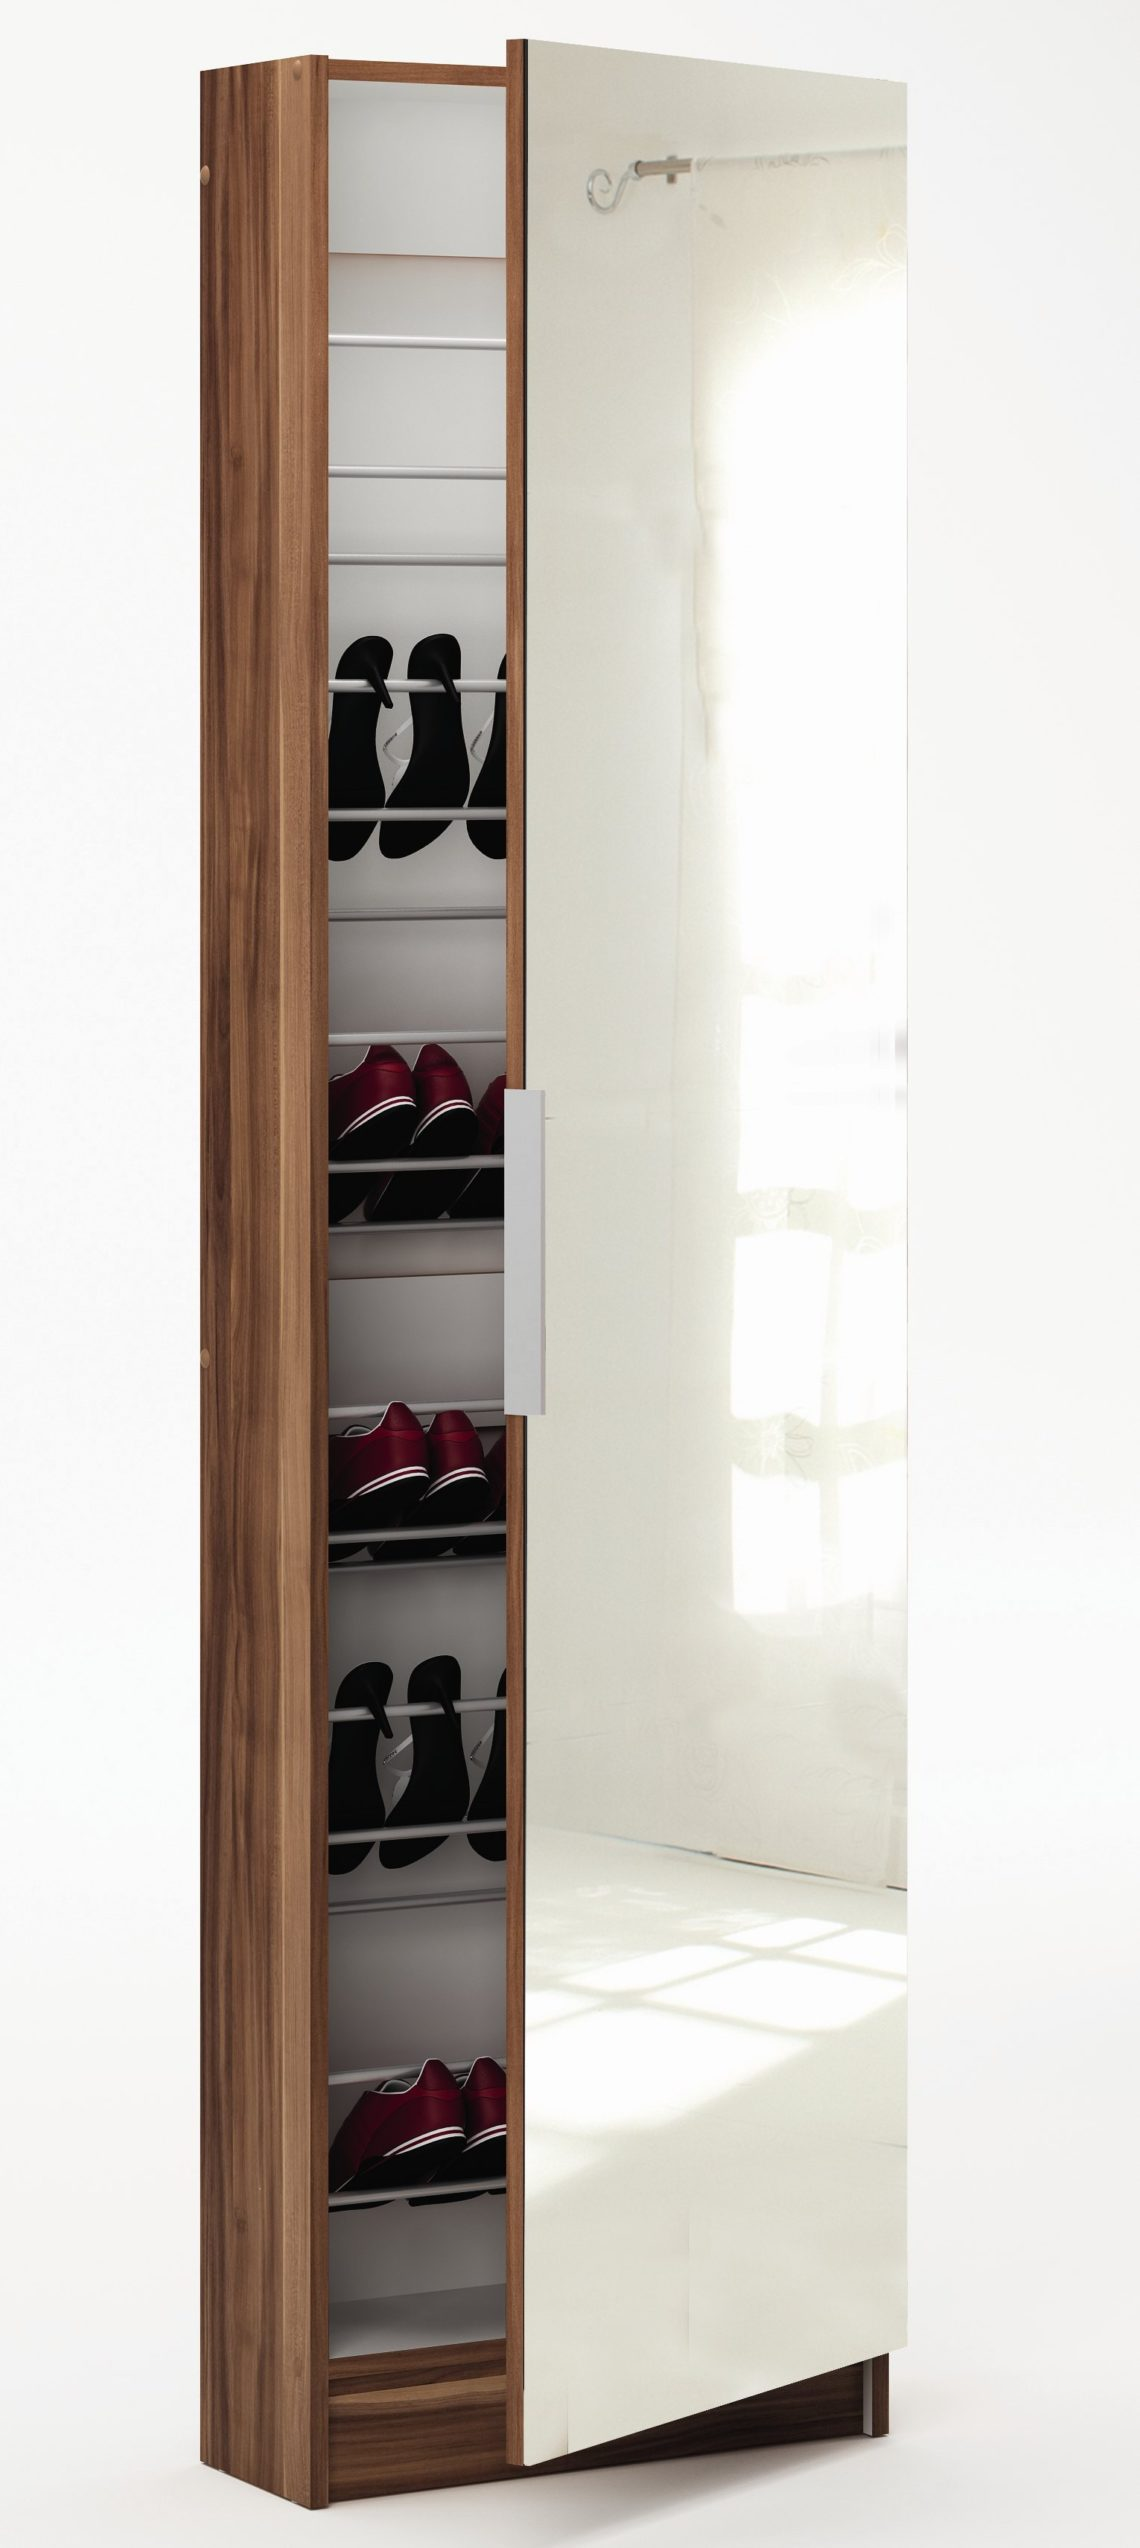 meuble chaussures alinea id es de d coration. Black Bedroom Furniture Sets. Home Design Ideas